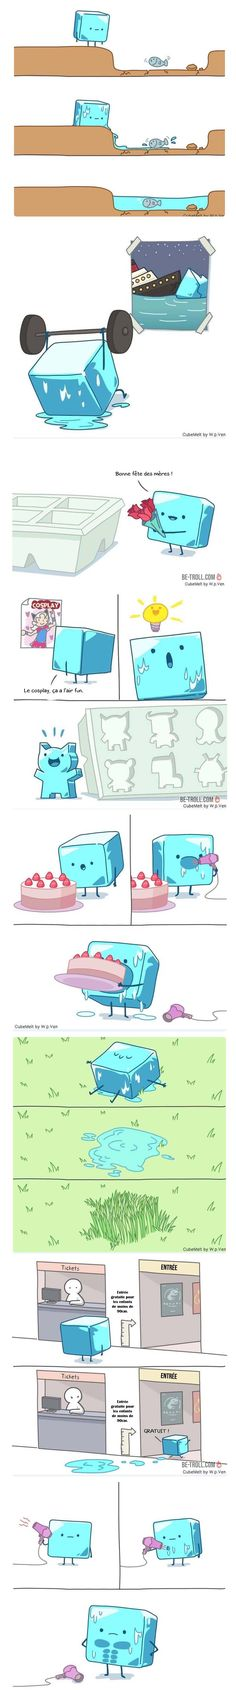 The Adventures of an Ice Dice Chapter 1 Cute Comics, Funny Comics, Funny Cute, Really Funny, Funny Jokes, Hilarious, Pranks, Cool Photos, Funny Pictures